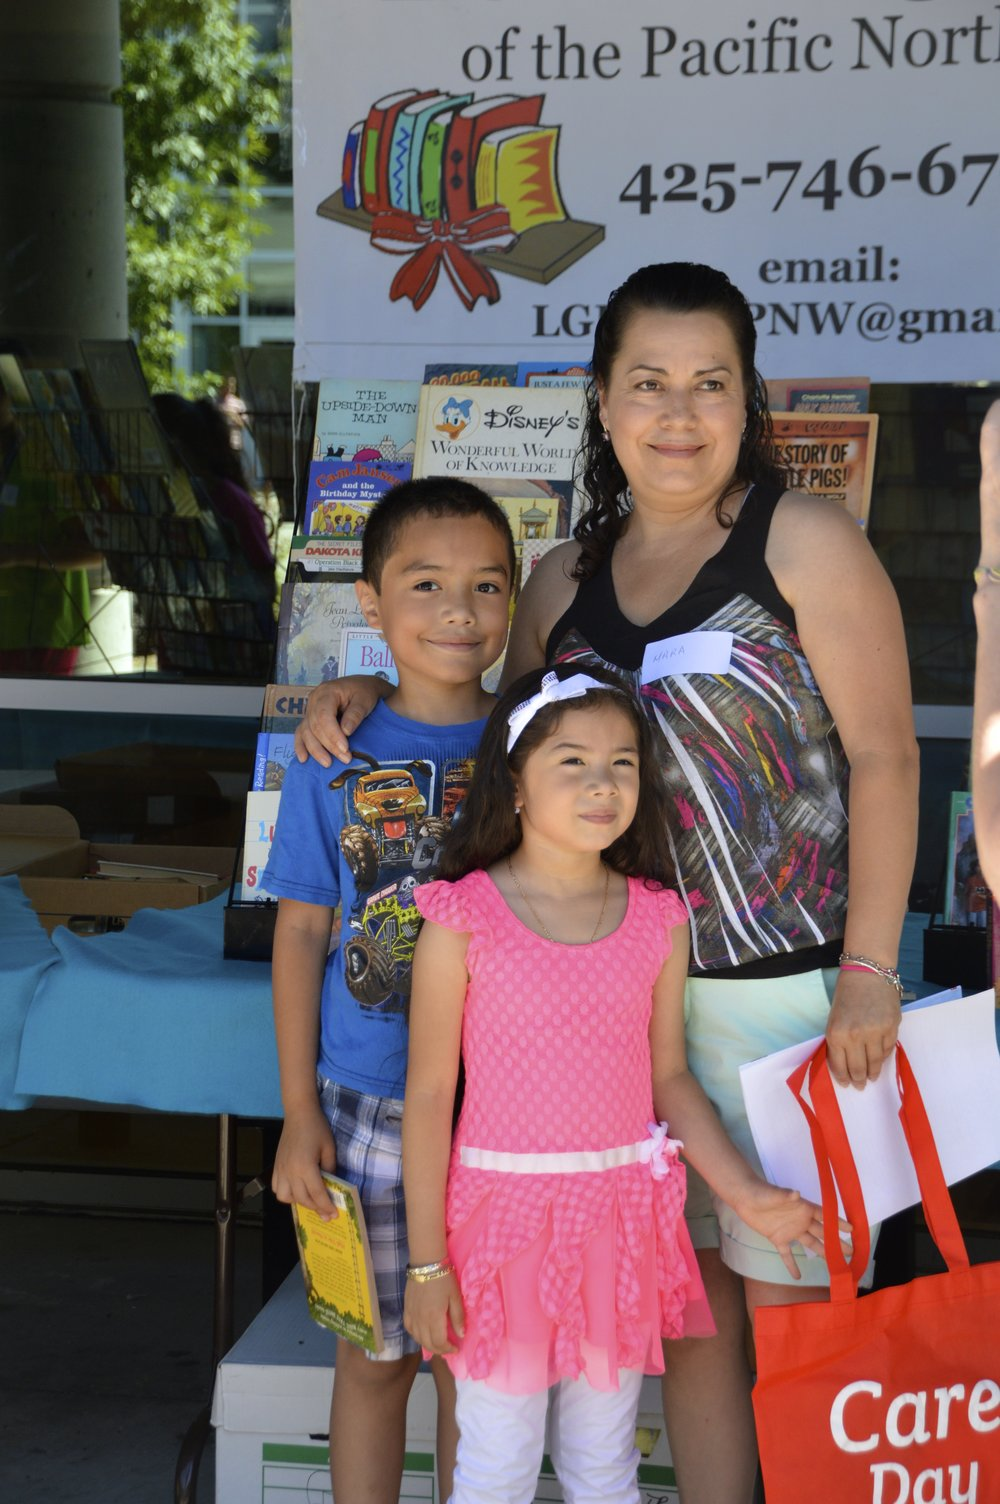 Beautiful Latino family with books and Care Day bag.jpg